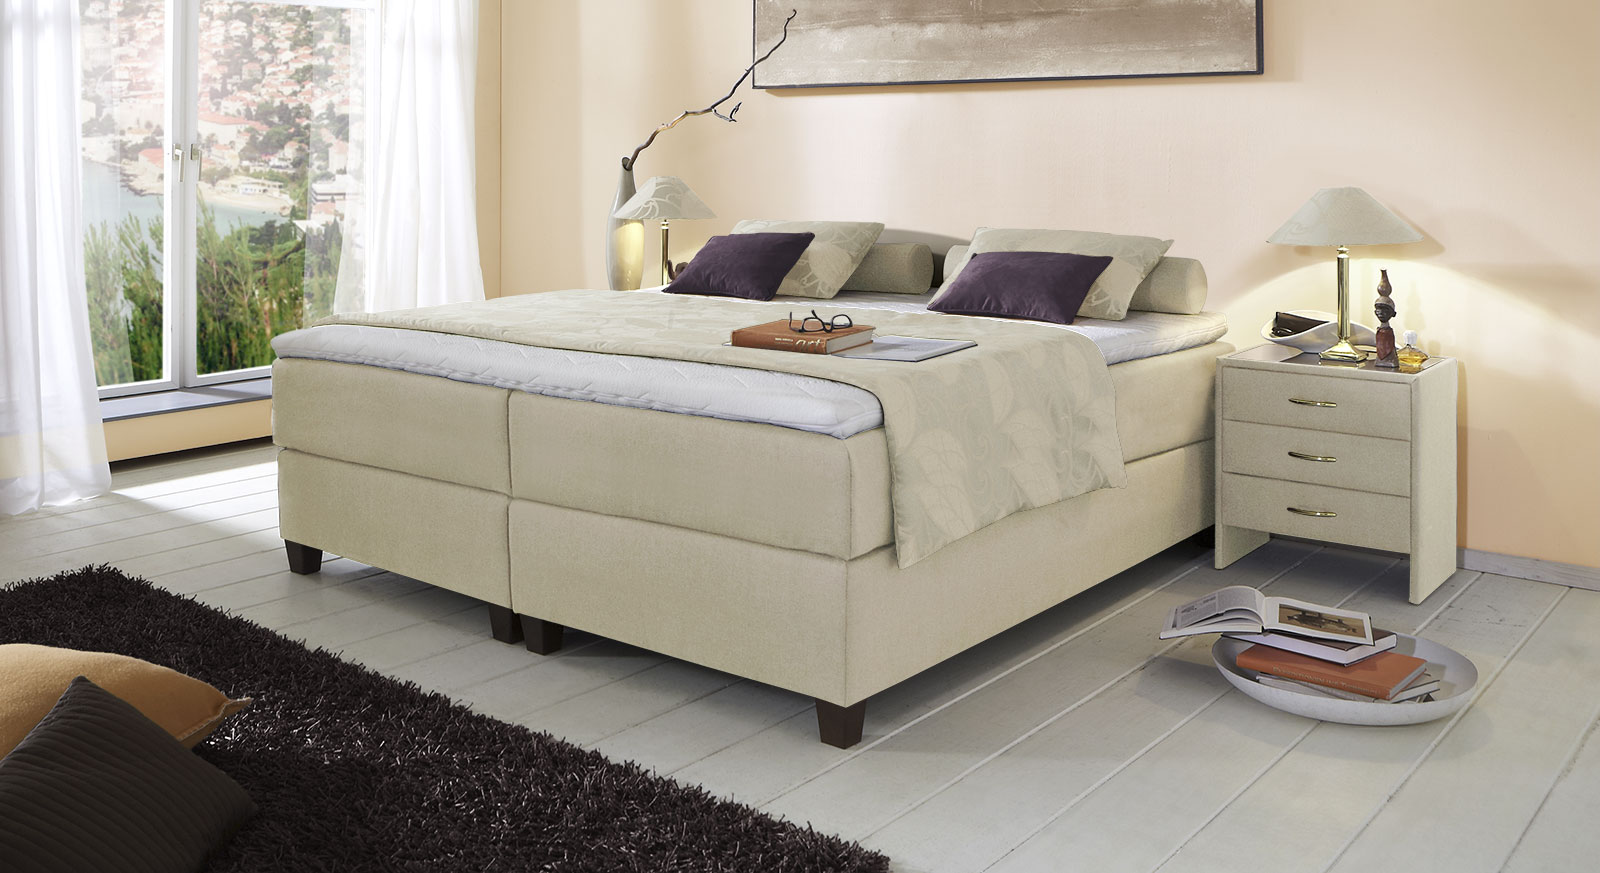 Boxspringliege Luciano in 66 cm Höhe mit Stoffbezug in Creme